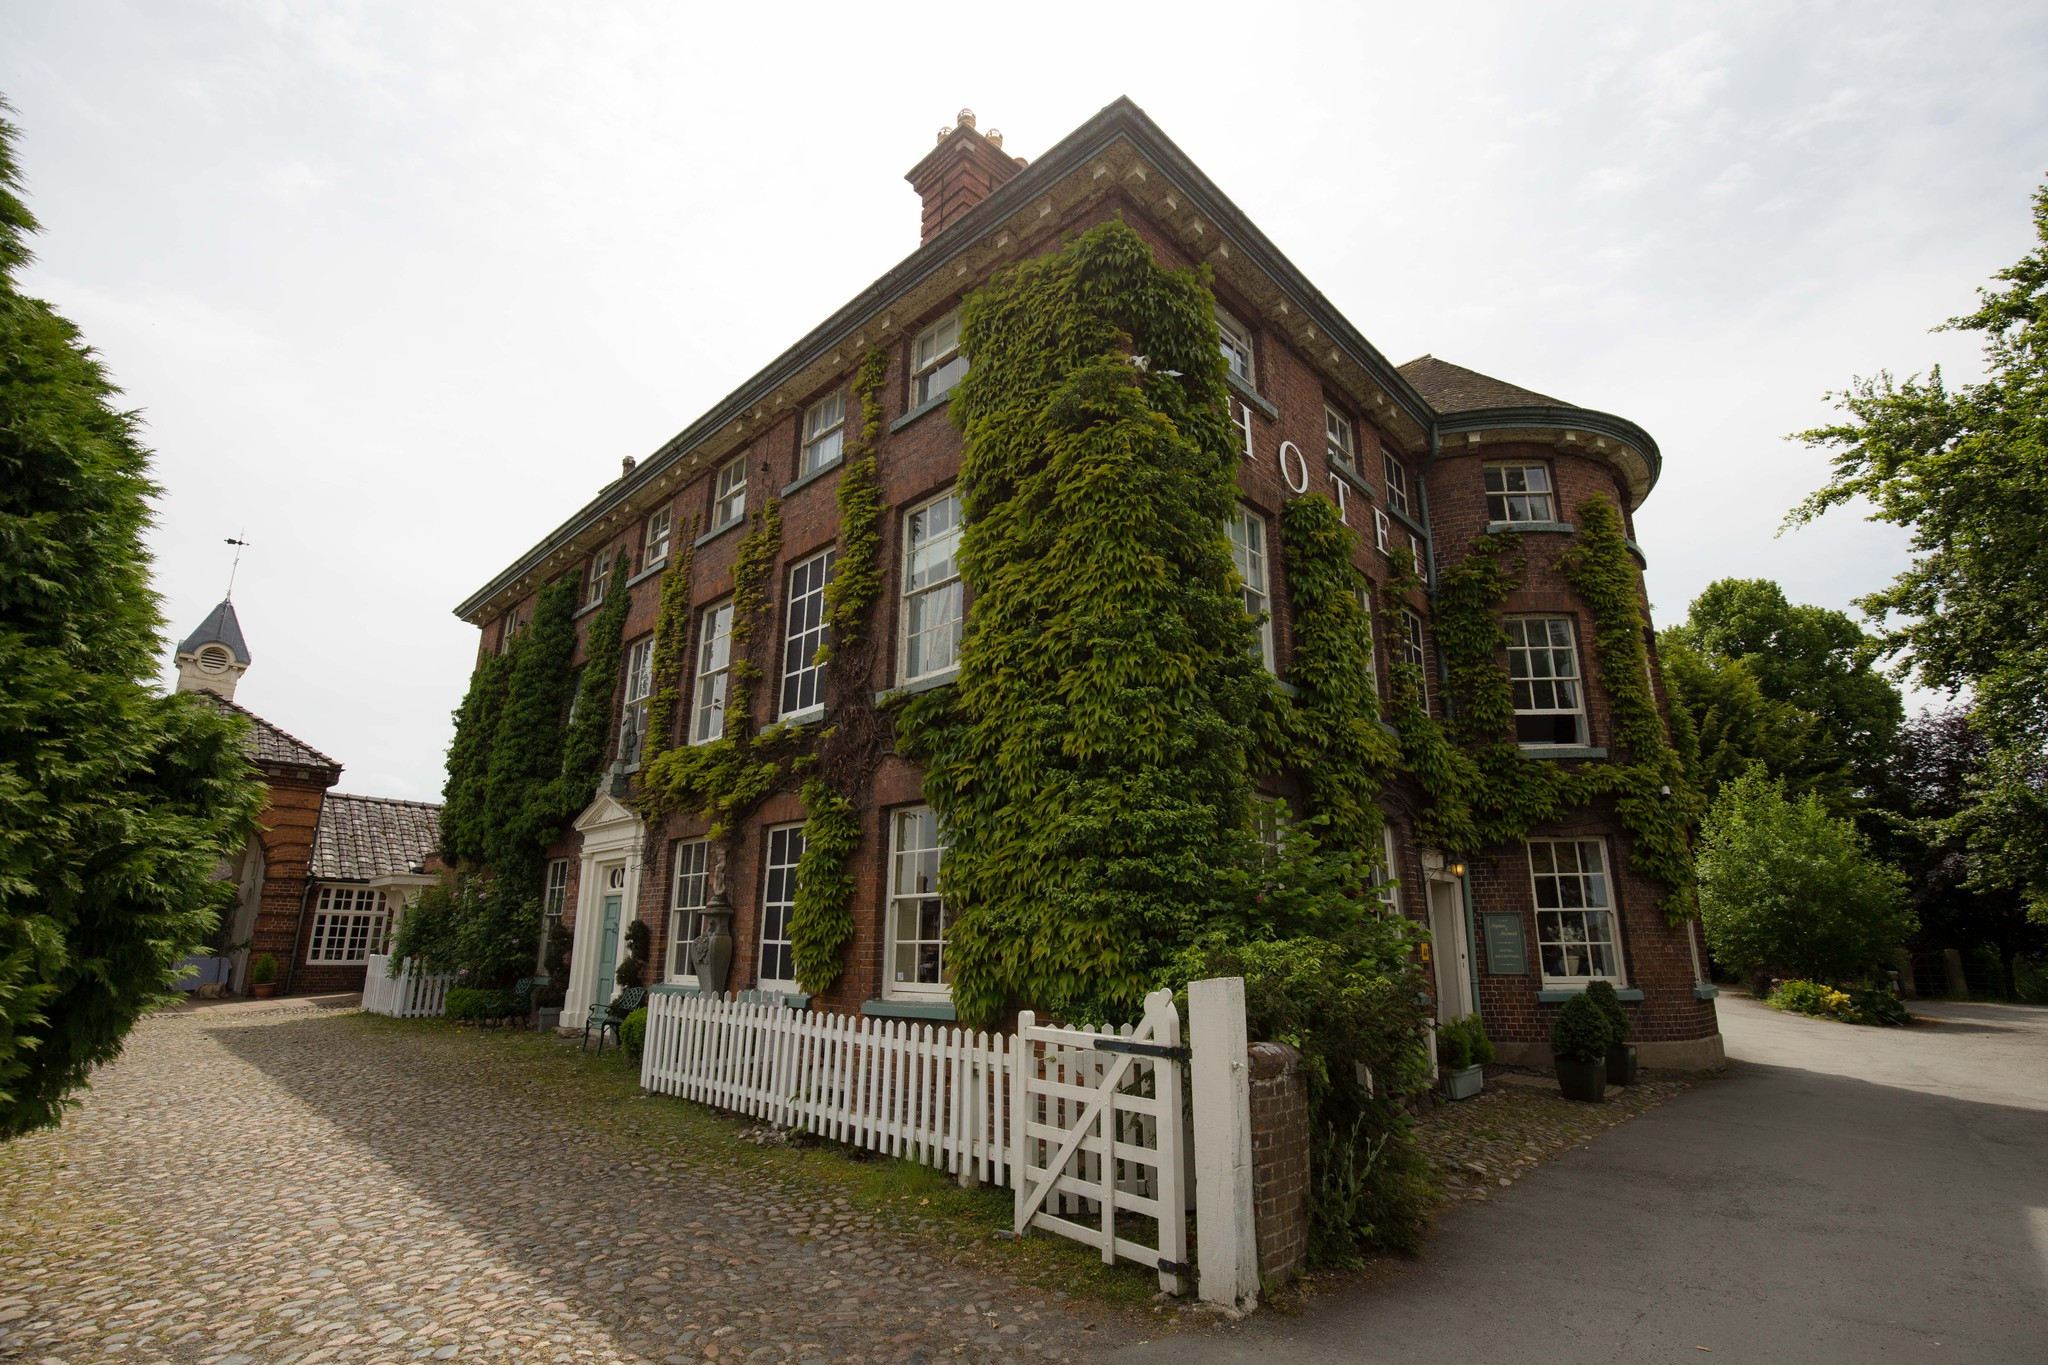 Mytton and Mermaid wedding venue in spring